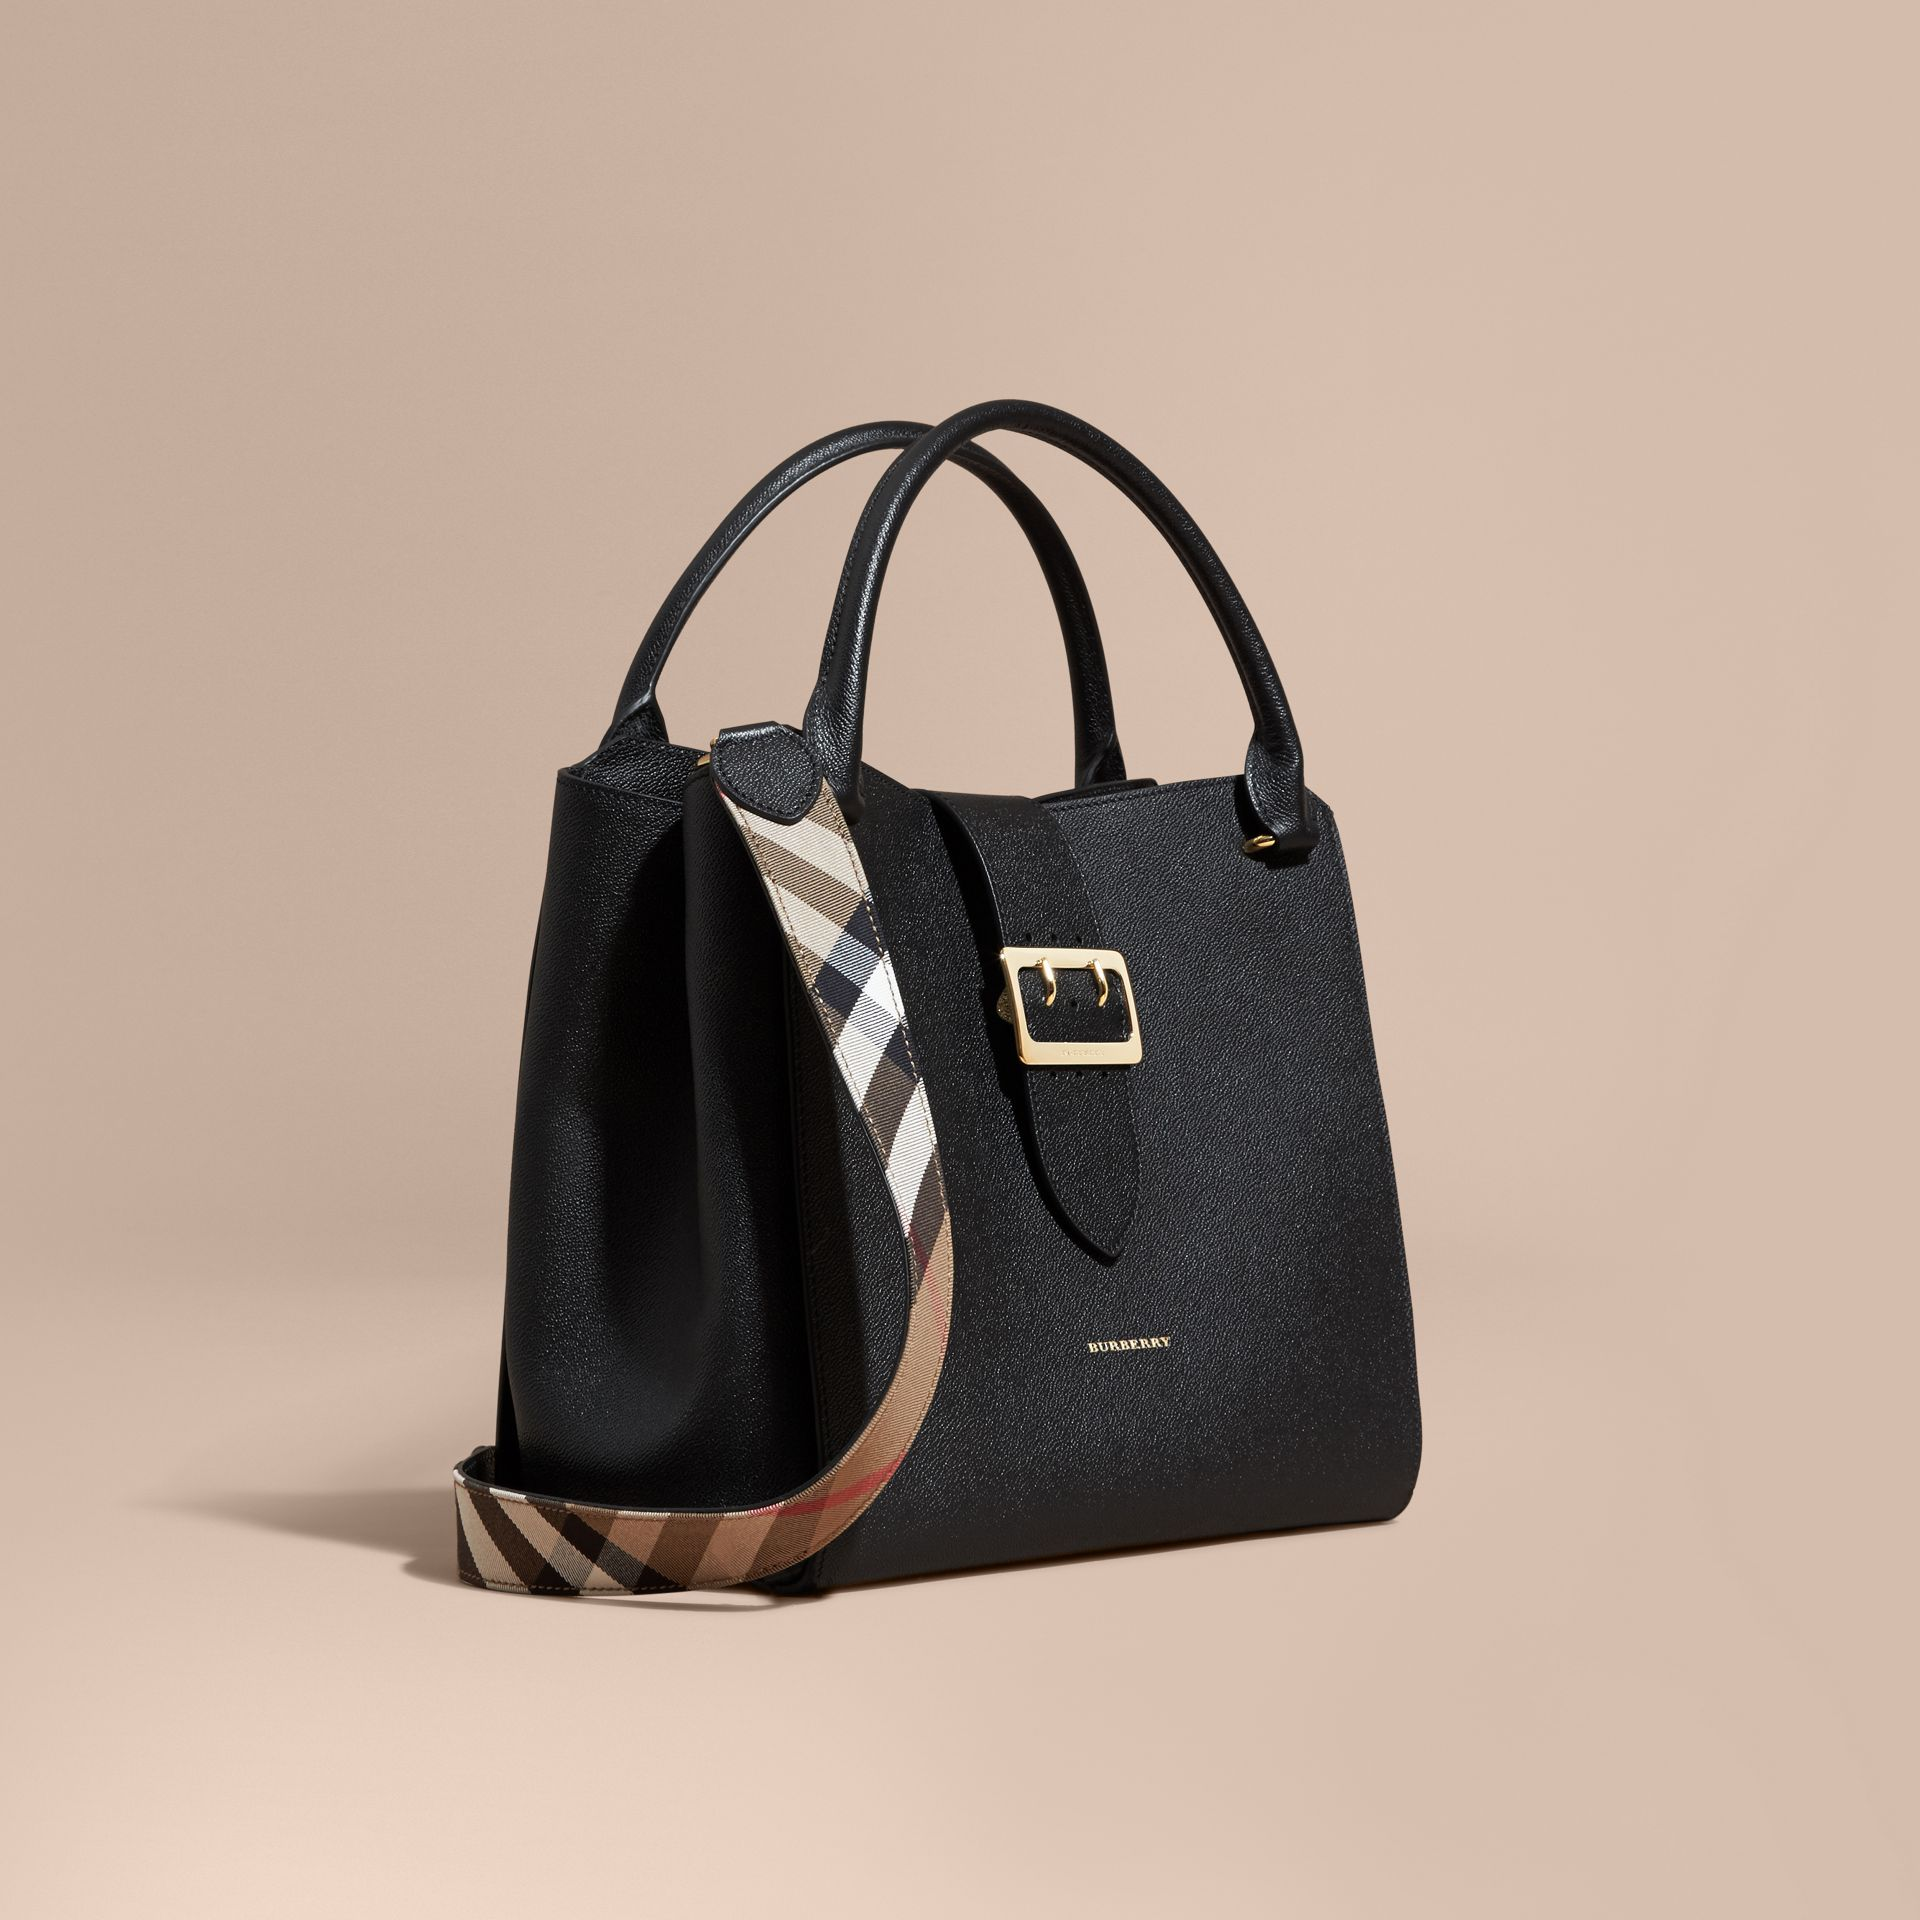 Borsa tote The Buckle grande in pelle a grana (Nero) - Donna | Burberry - immagine della galleria 1